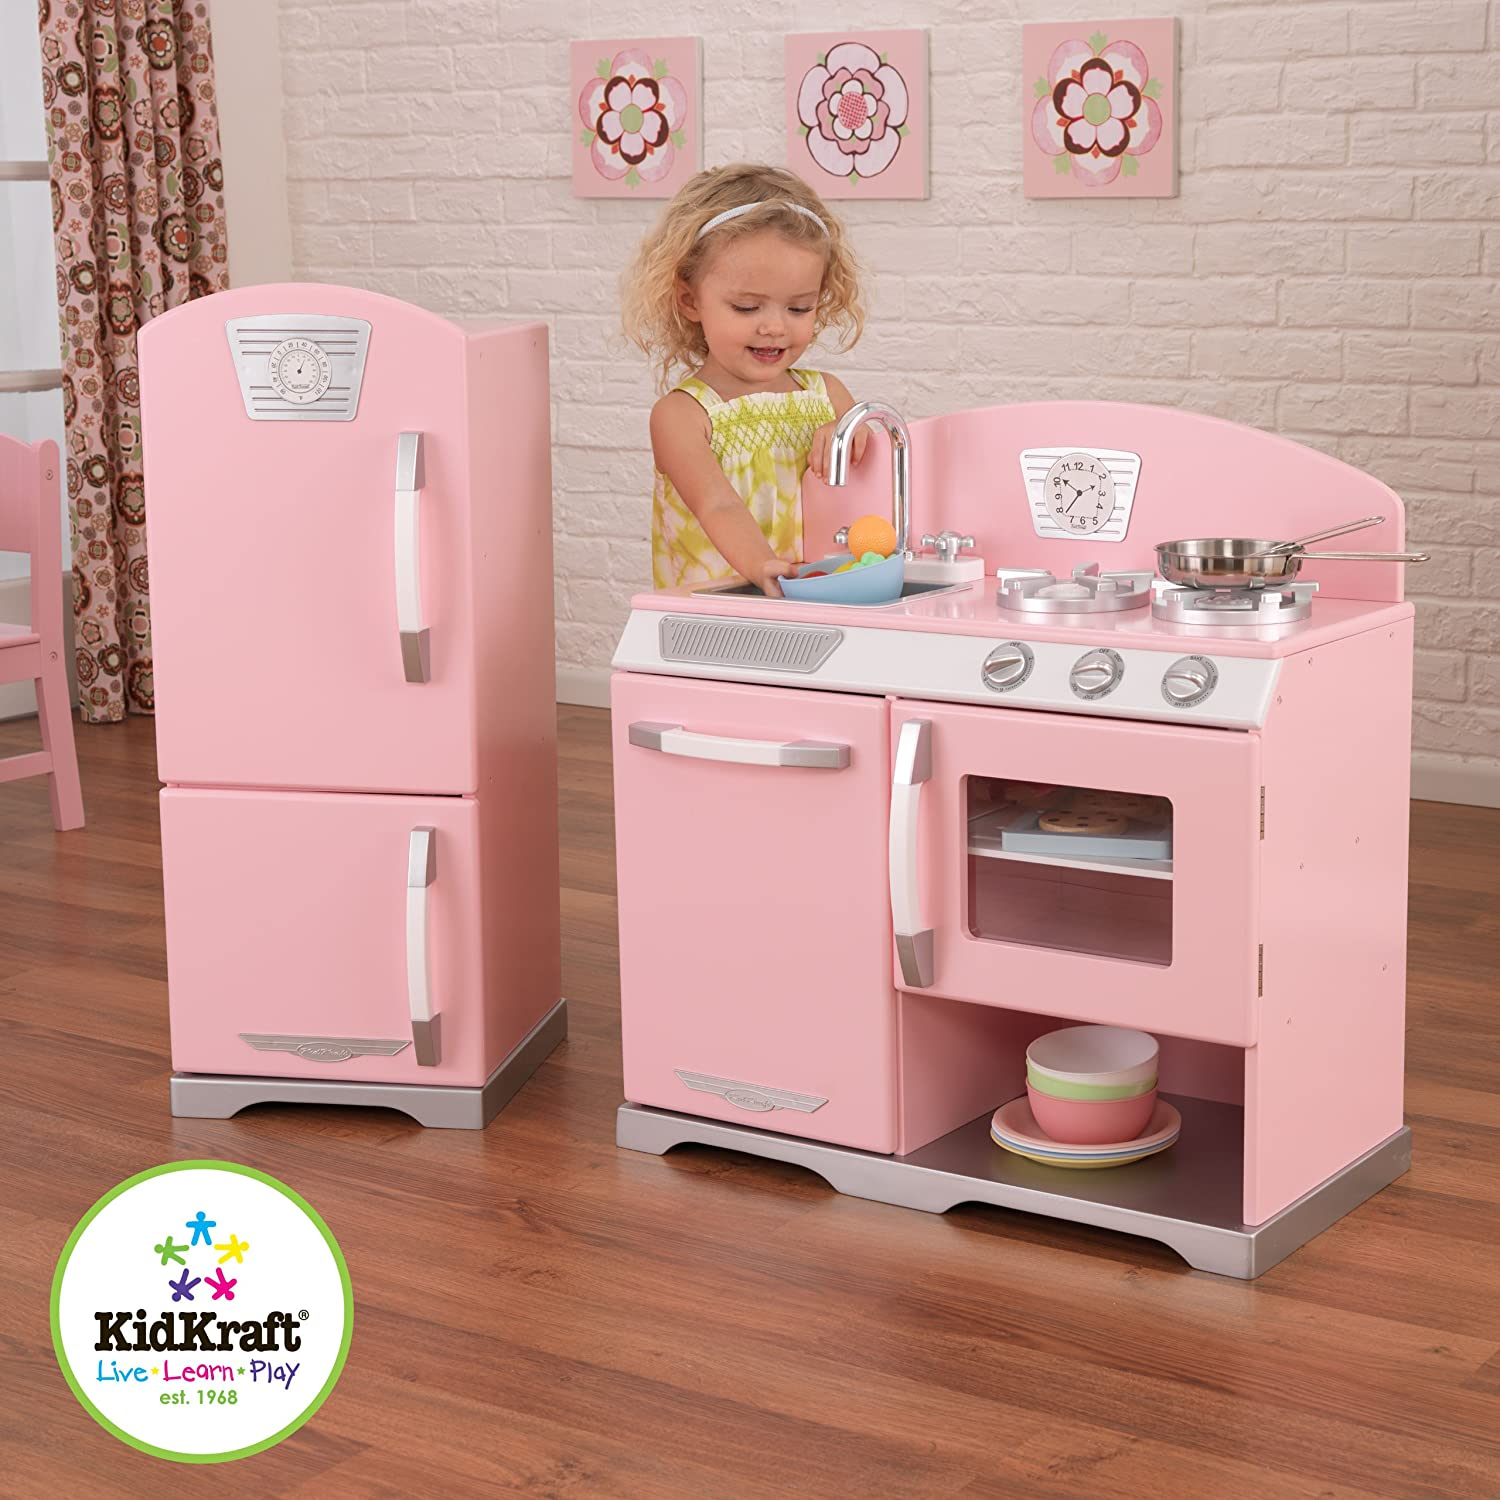 Amazon.com: Kidkraft Retro Kitchen And Refrigerator In Pink: Toys U0026 Games